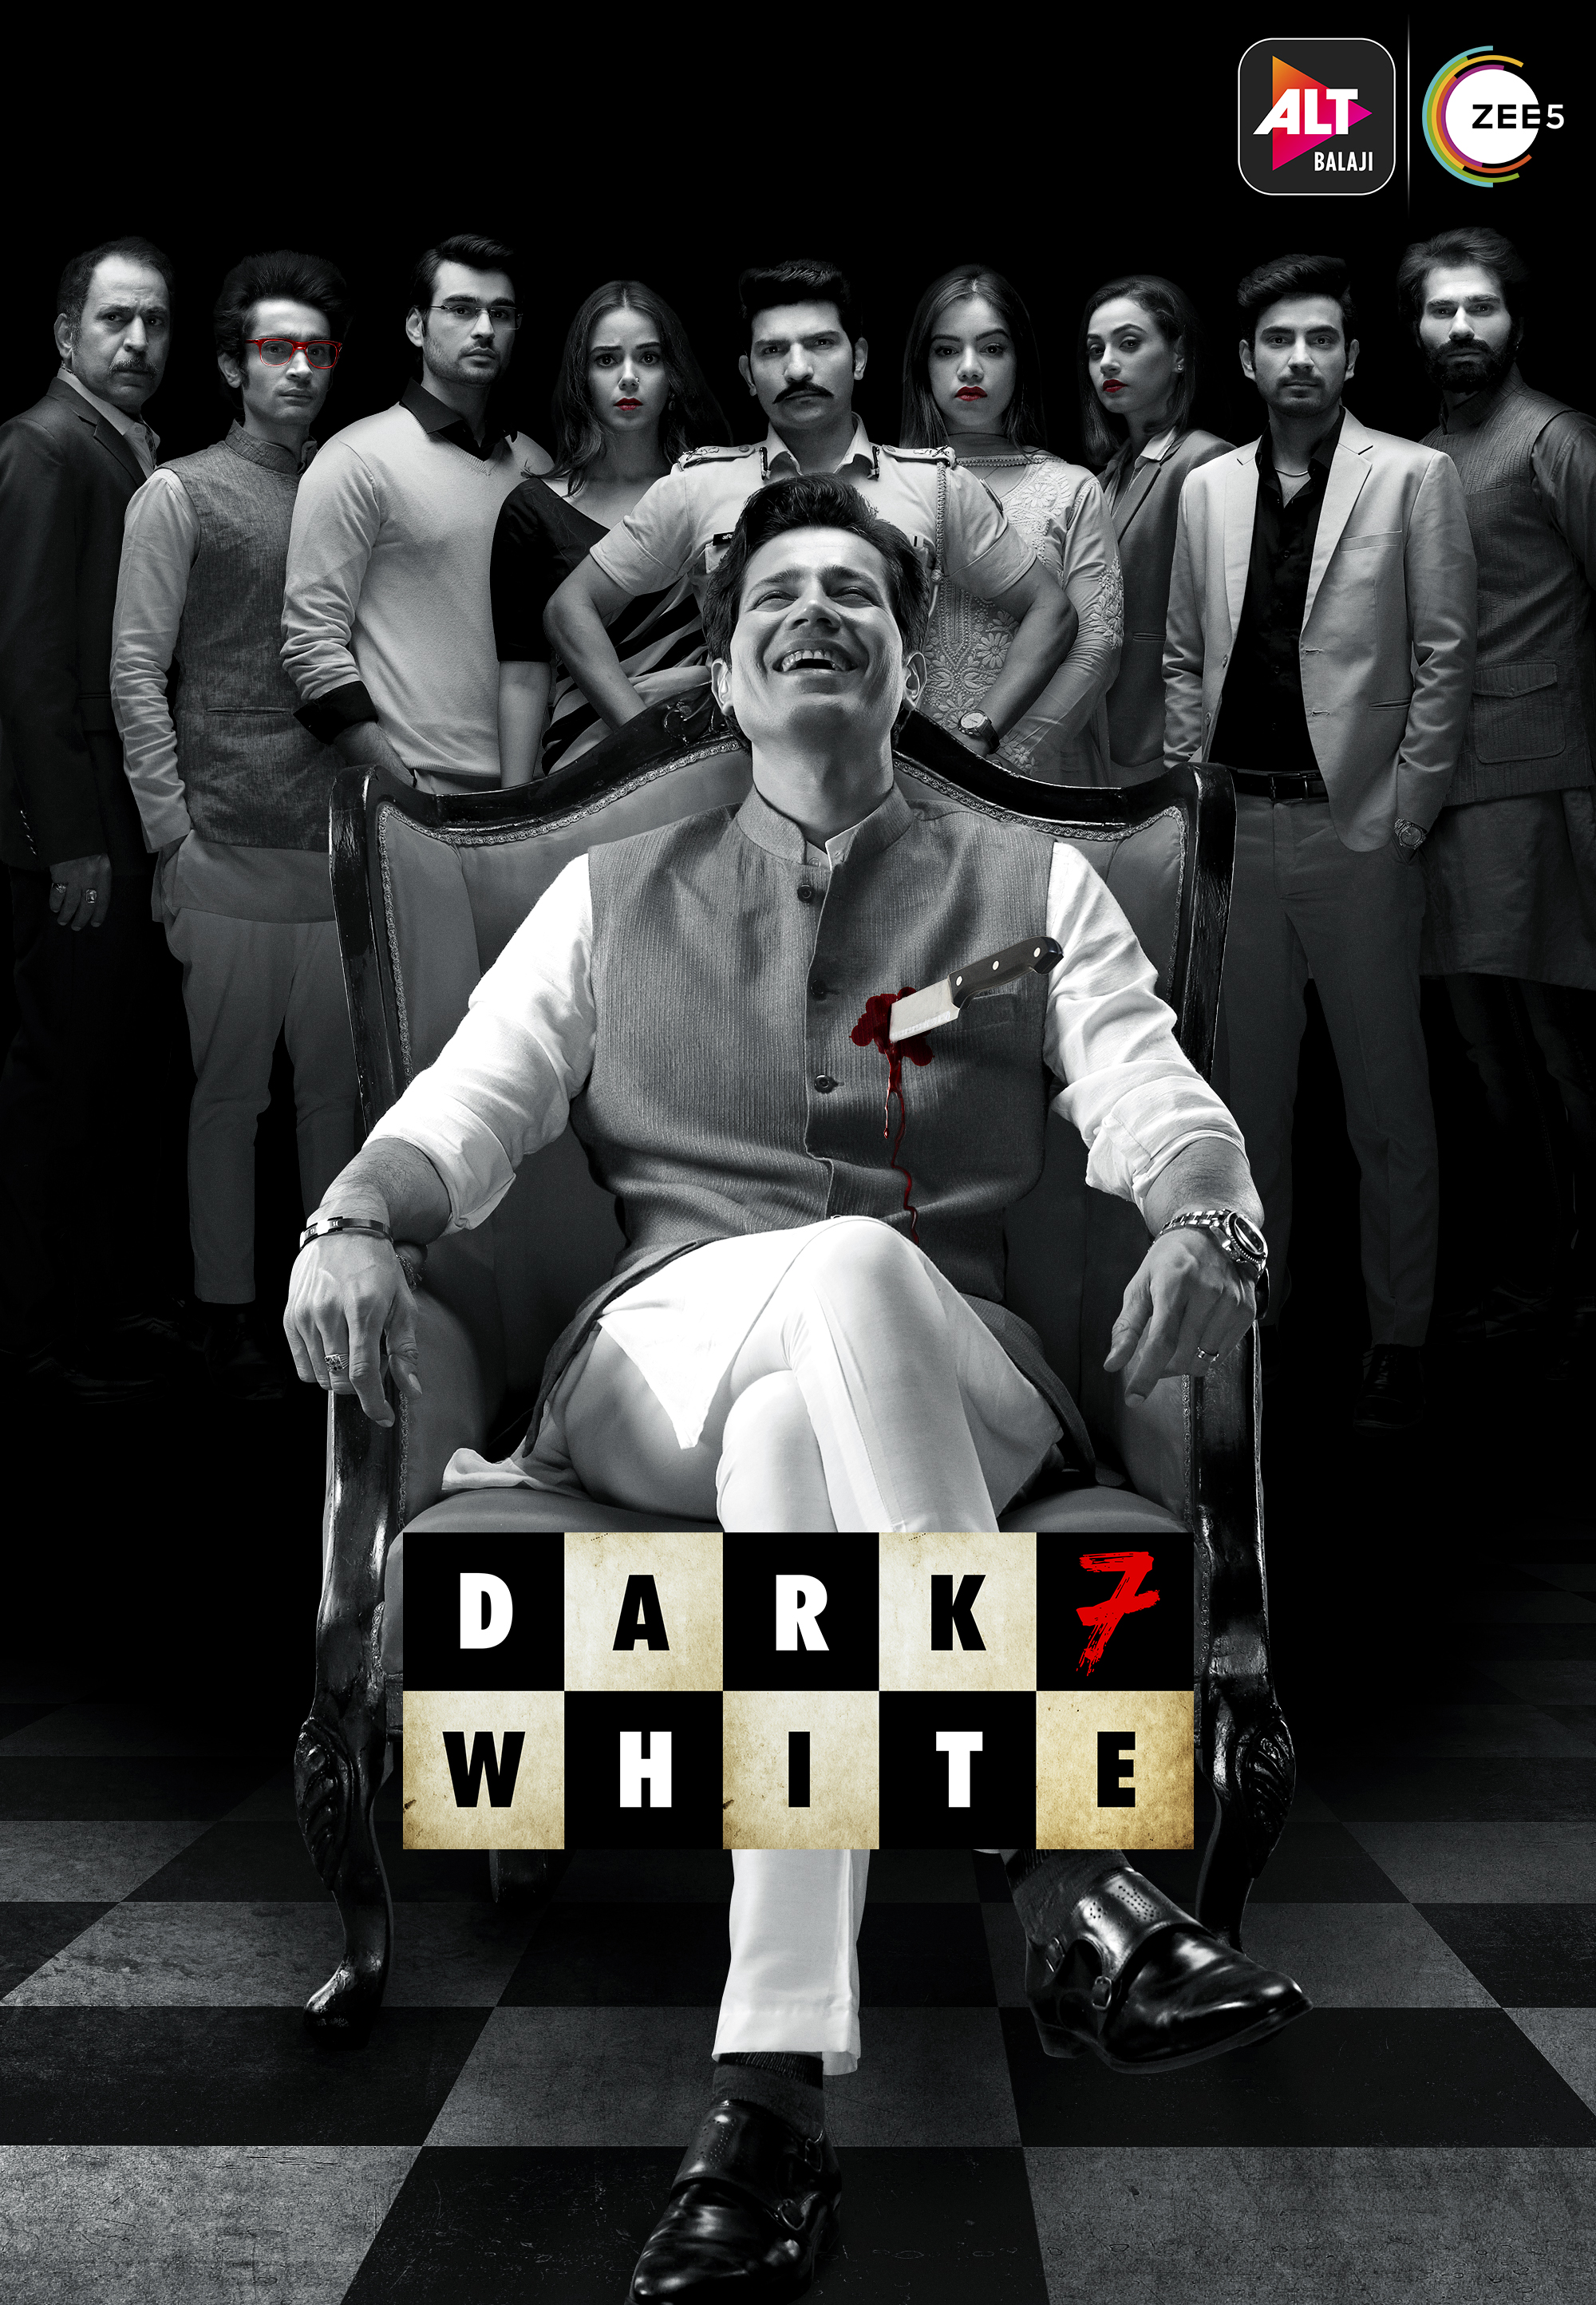 Dark 7 White 2020 S01 Hindi Complete ALTBalaji Original Web Series 480p HDRip 600MB x264 AAC